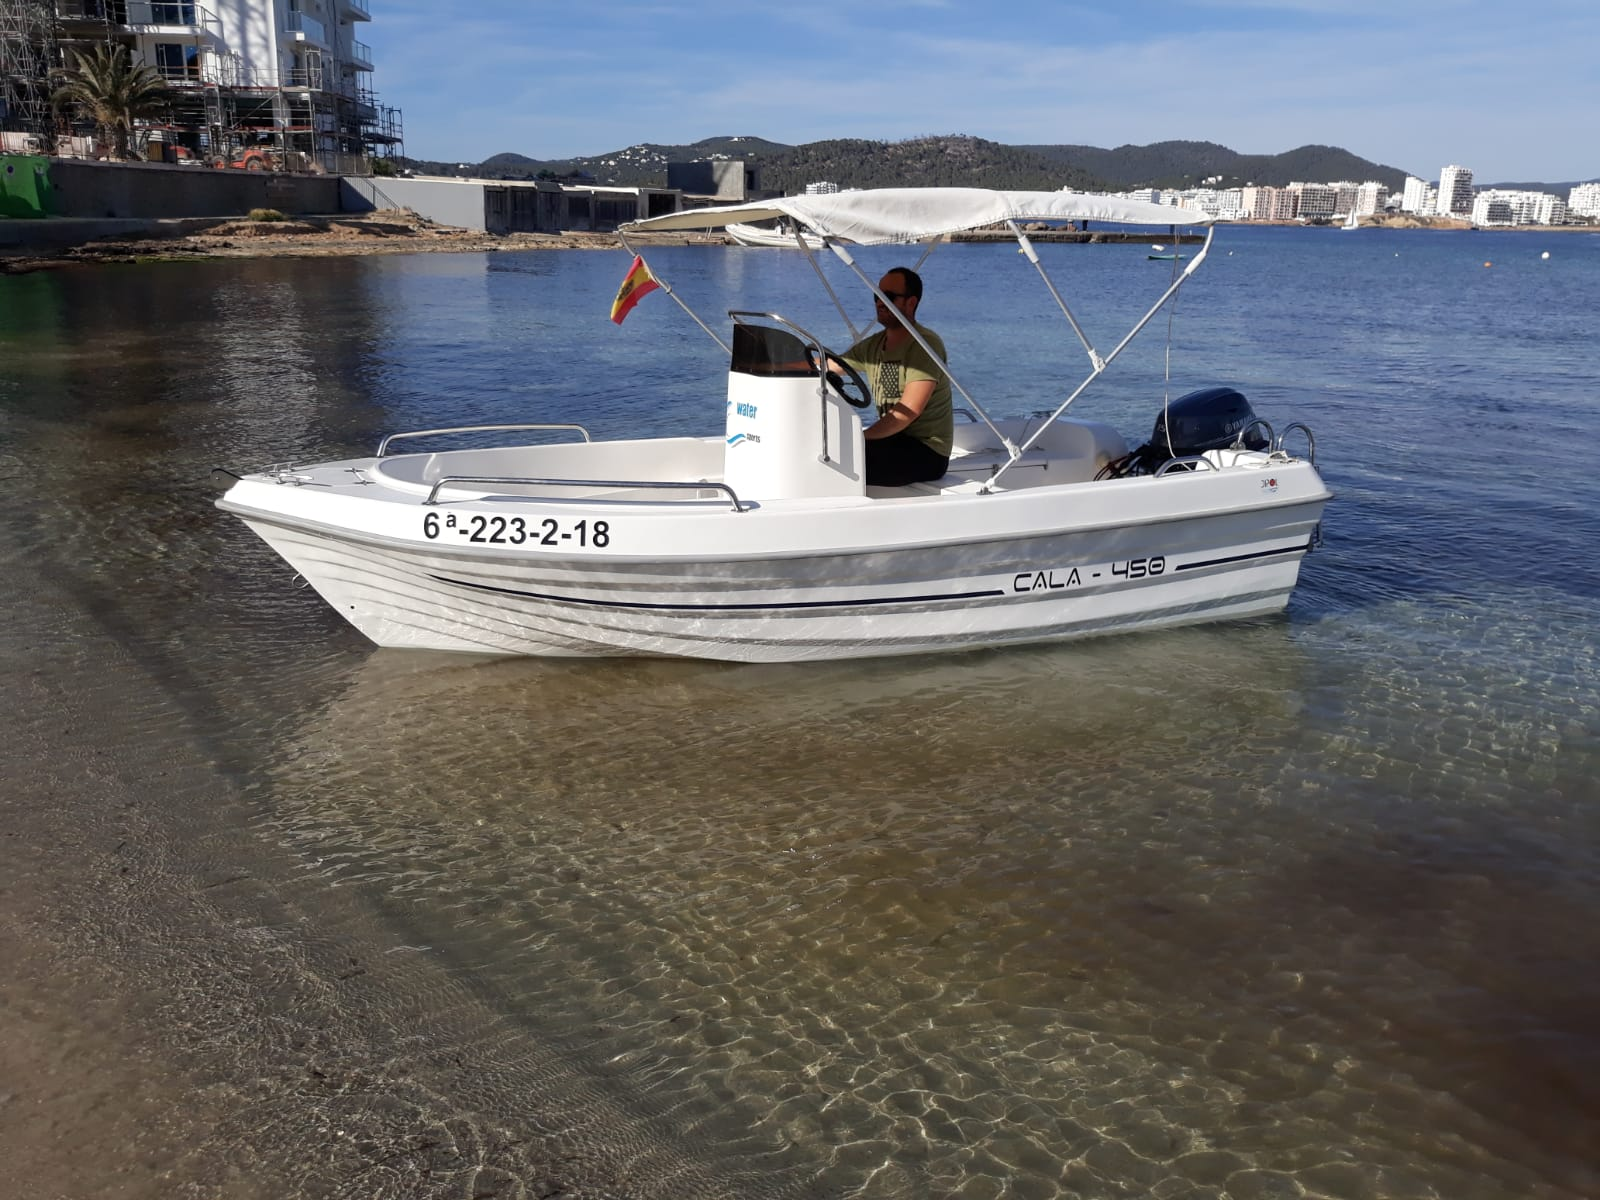 Boat Rental no licenses required in Ibiza full day | Hire Boat in ibiza